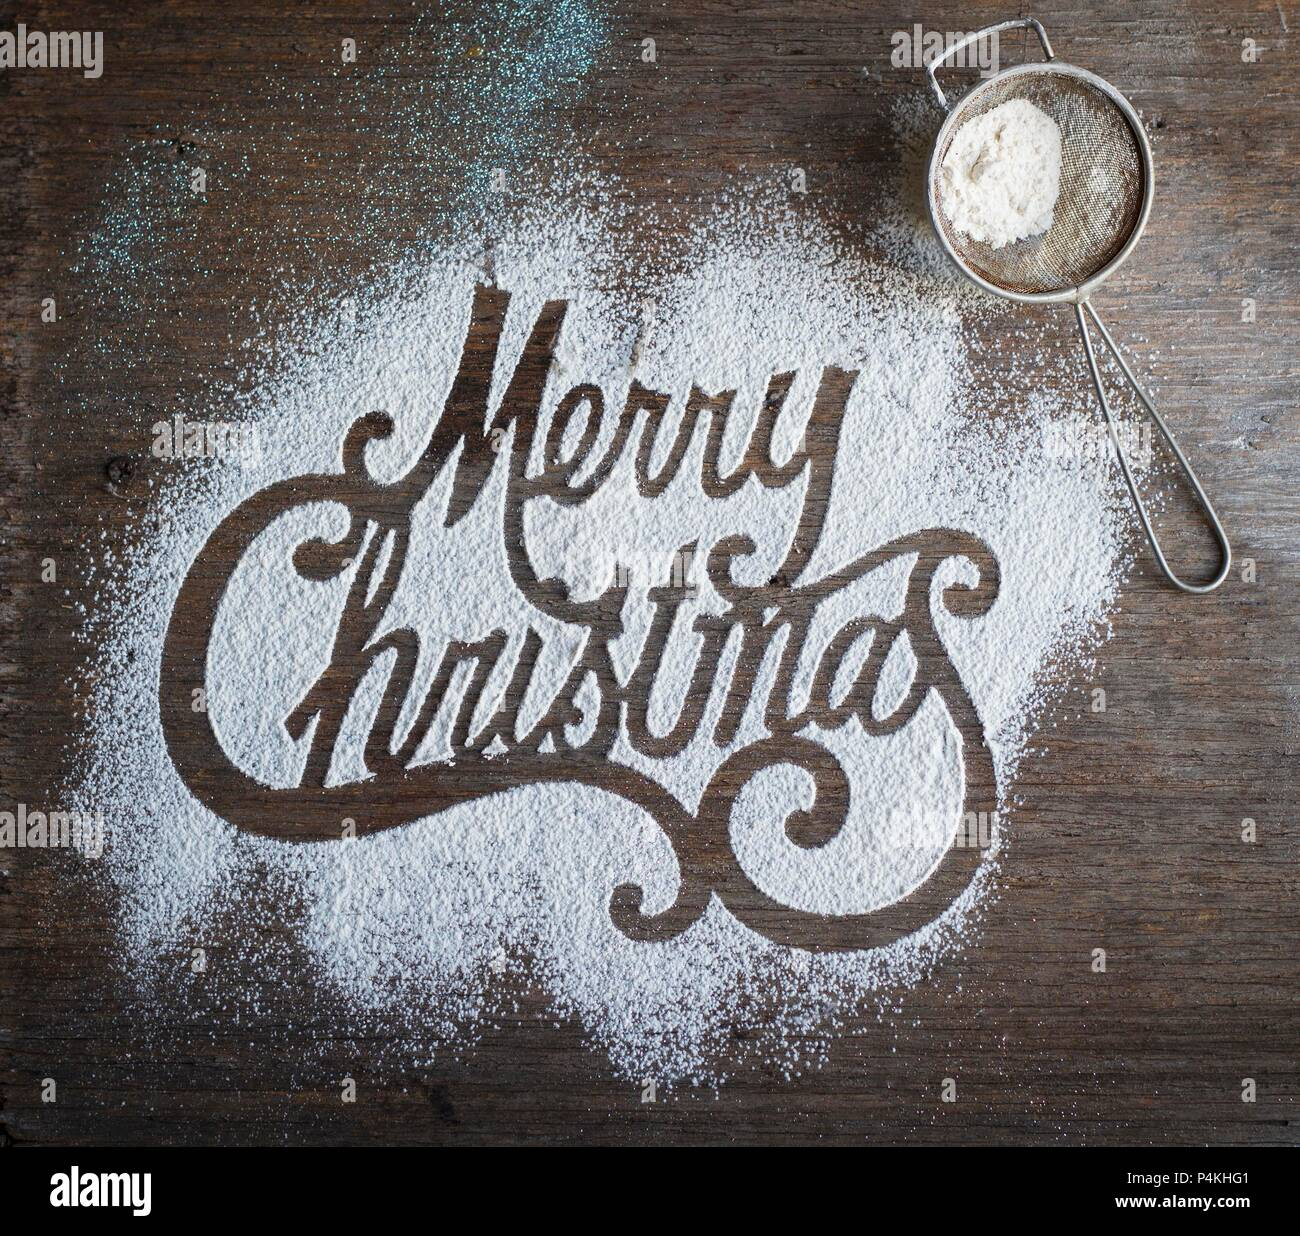 Merry Christmas written in icing sugar - Stock Image